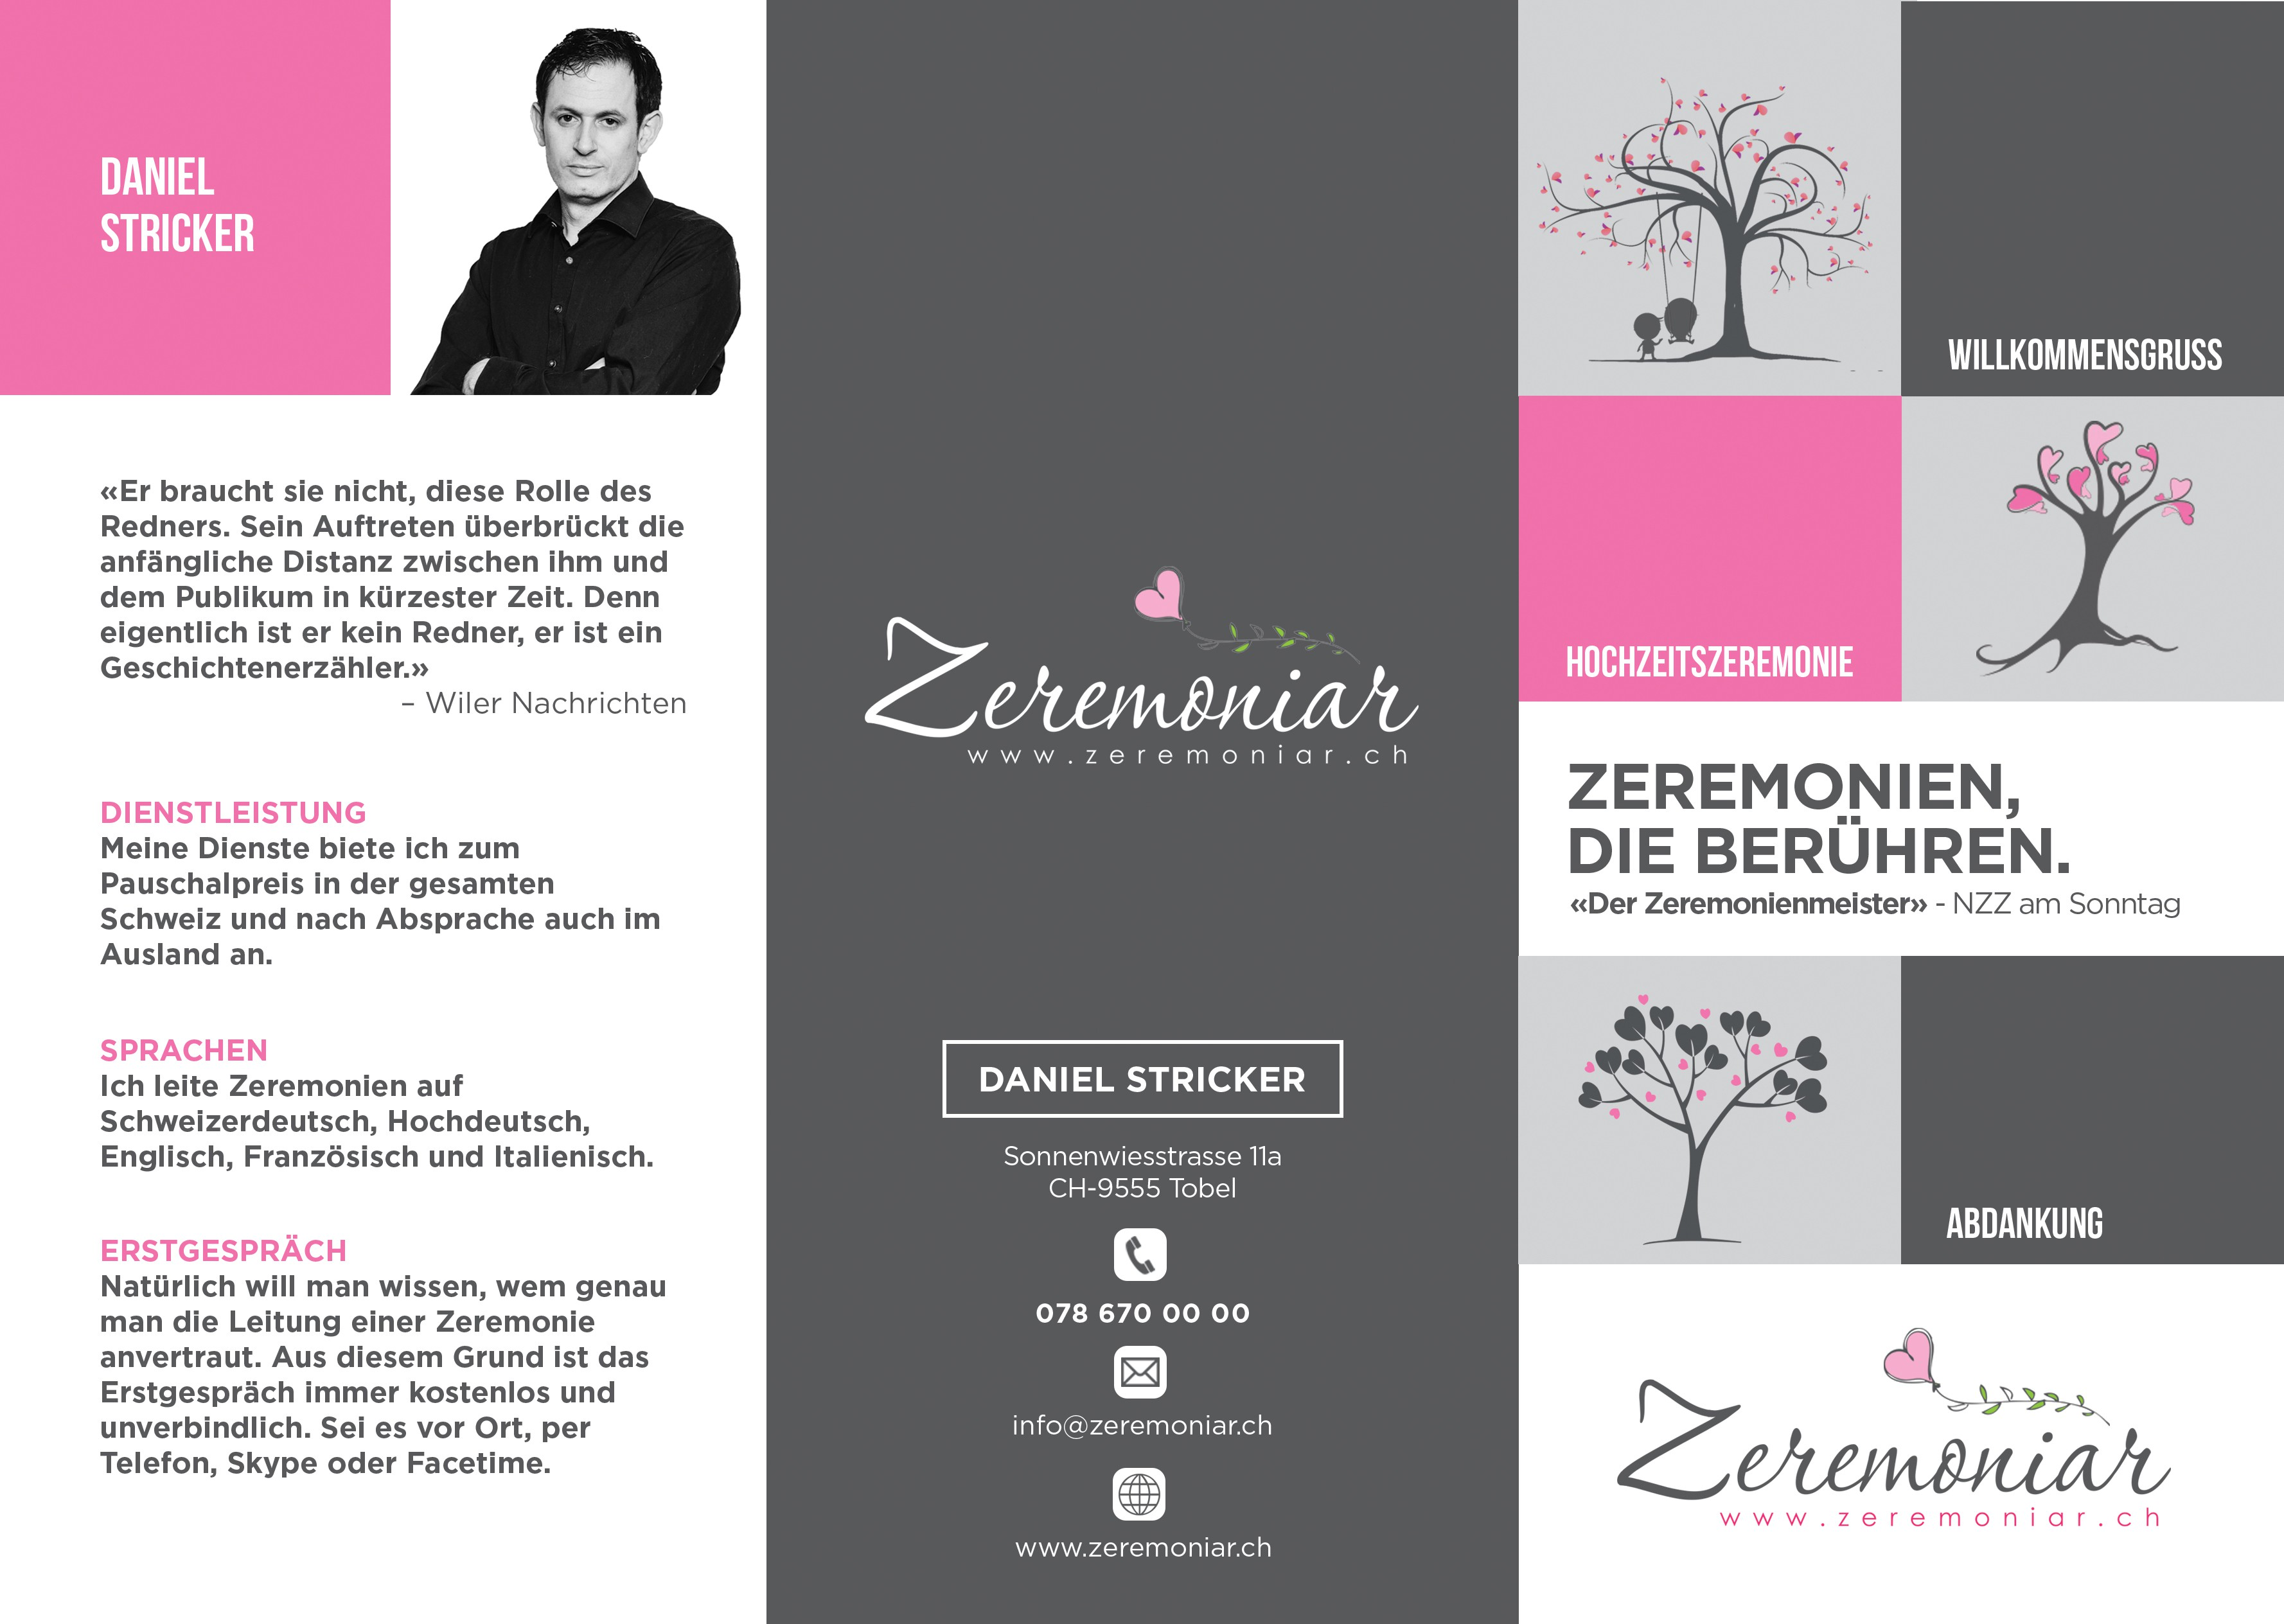 Brochure for Master of Ceremonies (A4 - folded twice): A4 - roll-folded or z-folded: http://imex-print.co.uk/images/DL-6